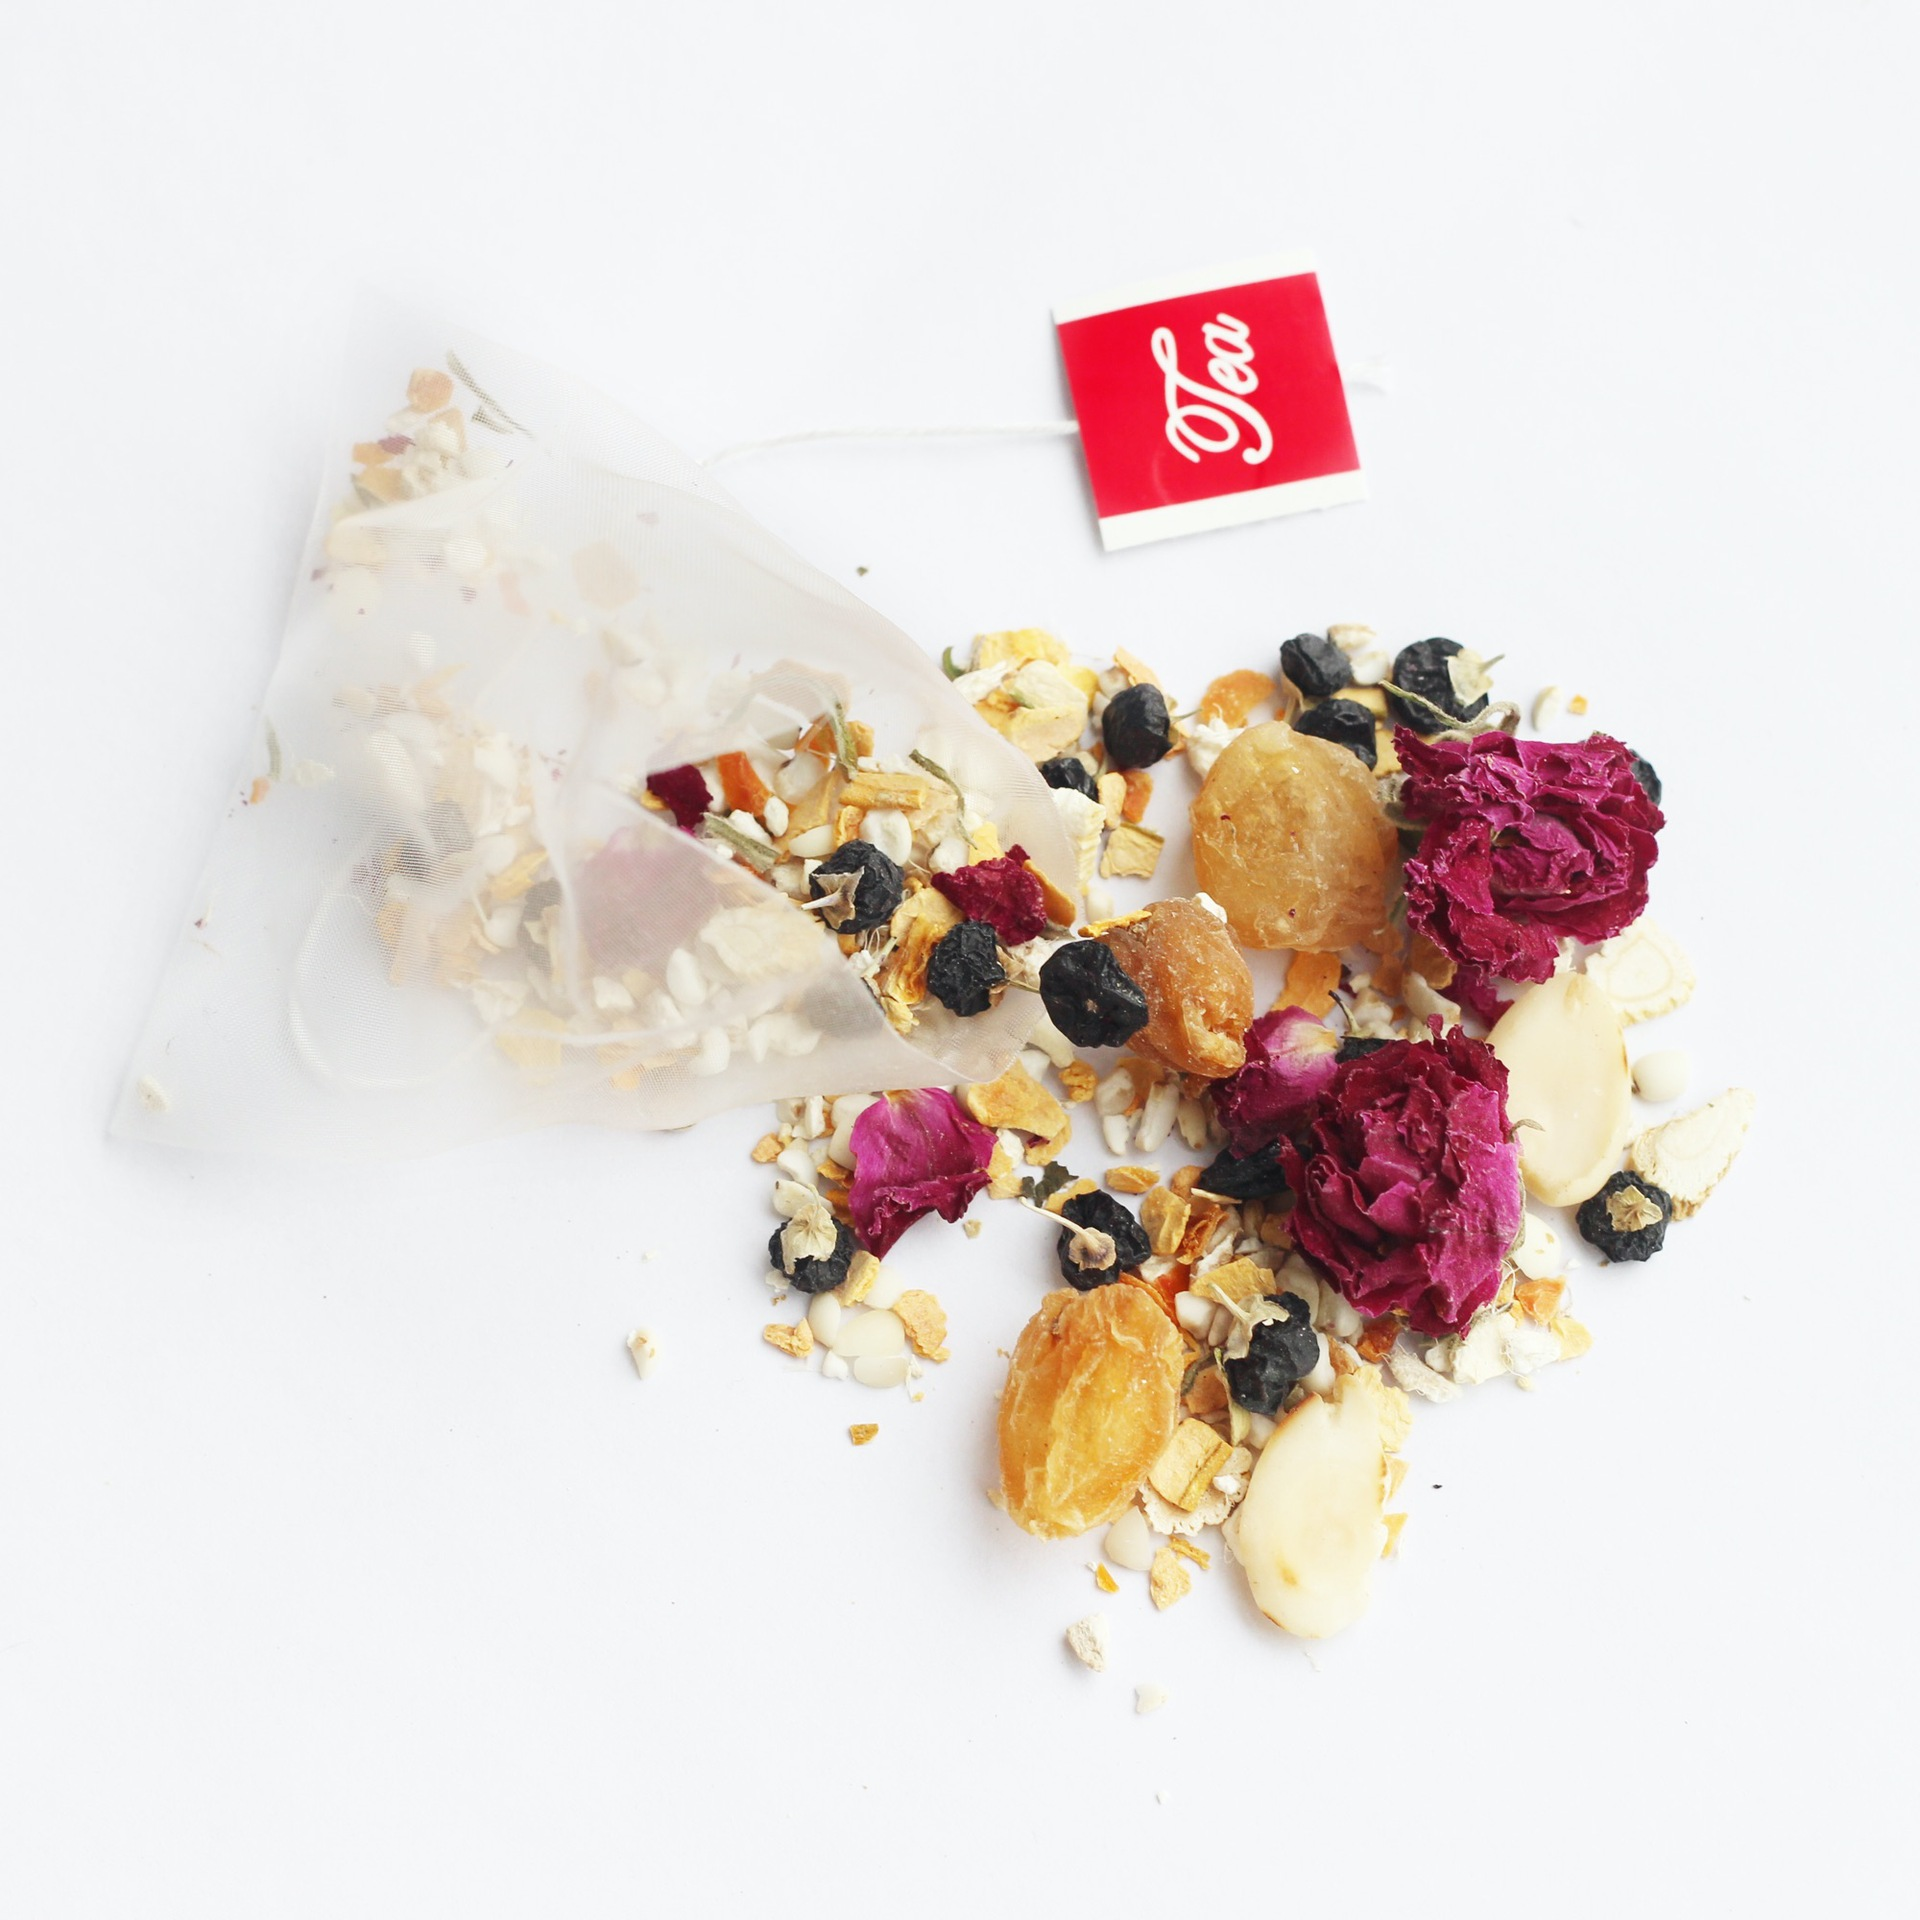 Private Label Wholesale Peach Blossom Petals&Dried Roses Chinese Herbal Tea Warm Stomach And Detox Slimming Tea Bags - 4uTea | 4uTea.com